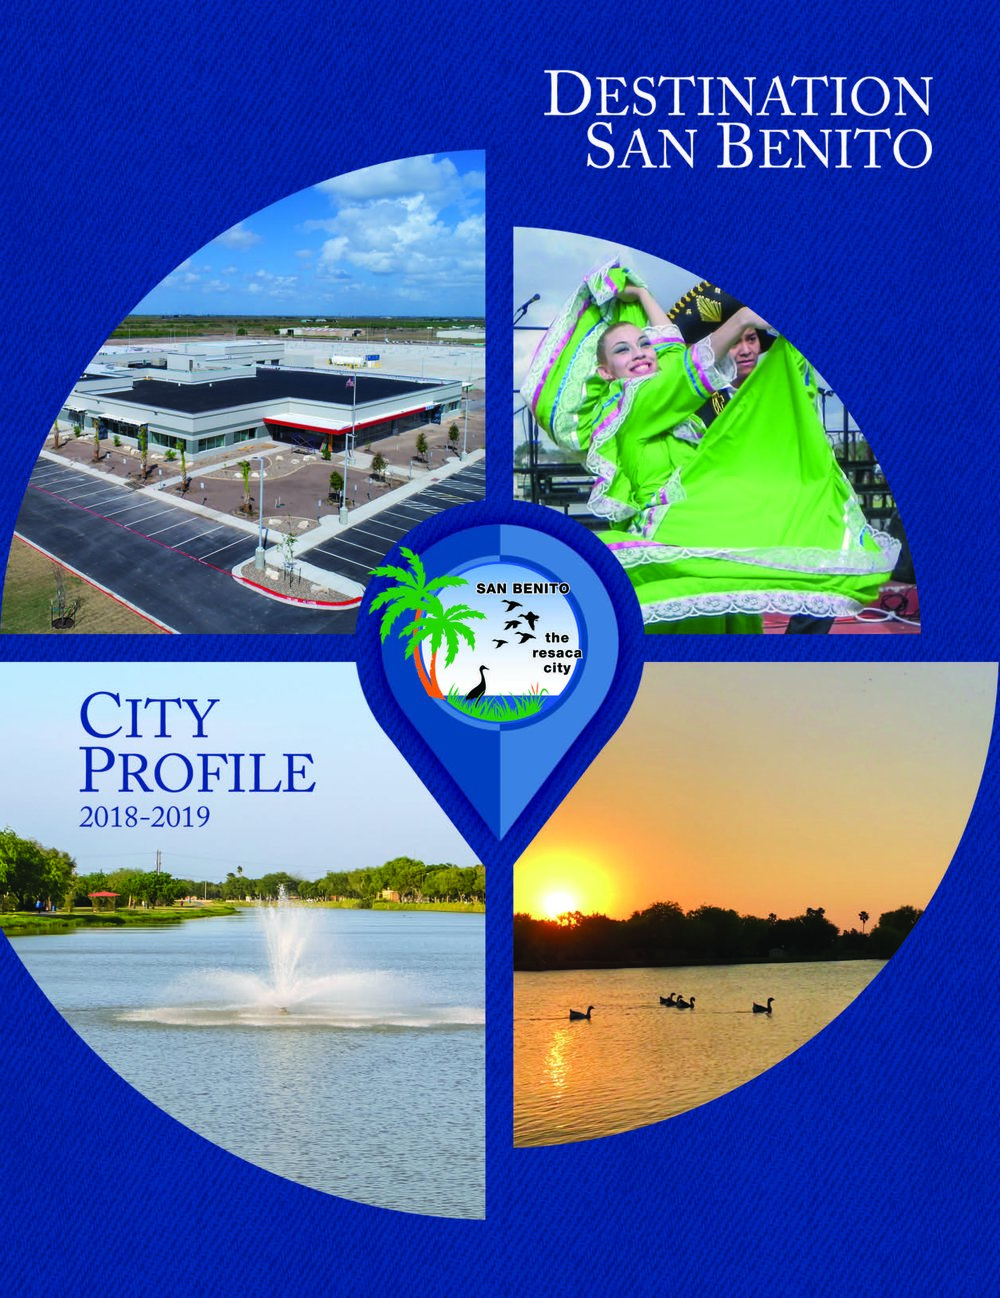 The City of San Benito has released its 2018-2019 City Profile.  Visit  cityofsanbenito.com  to view the publication, or stop by the Municipal Building for your copy.